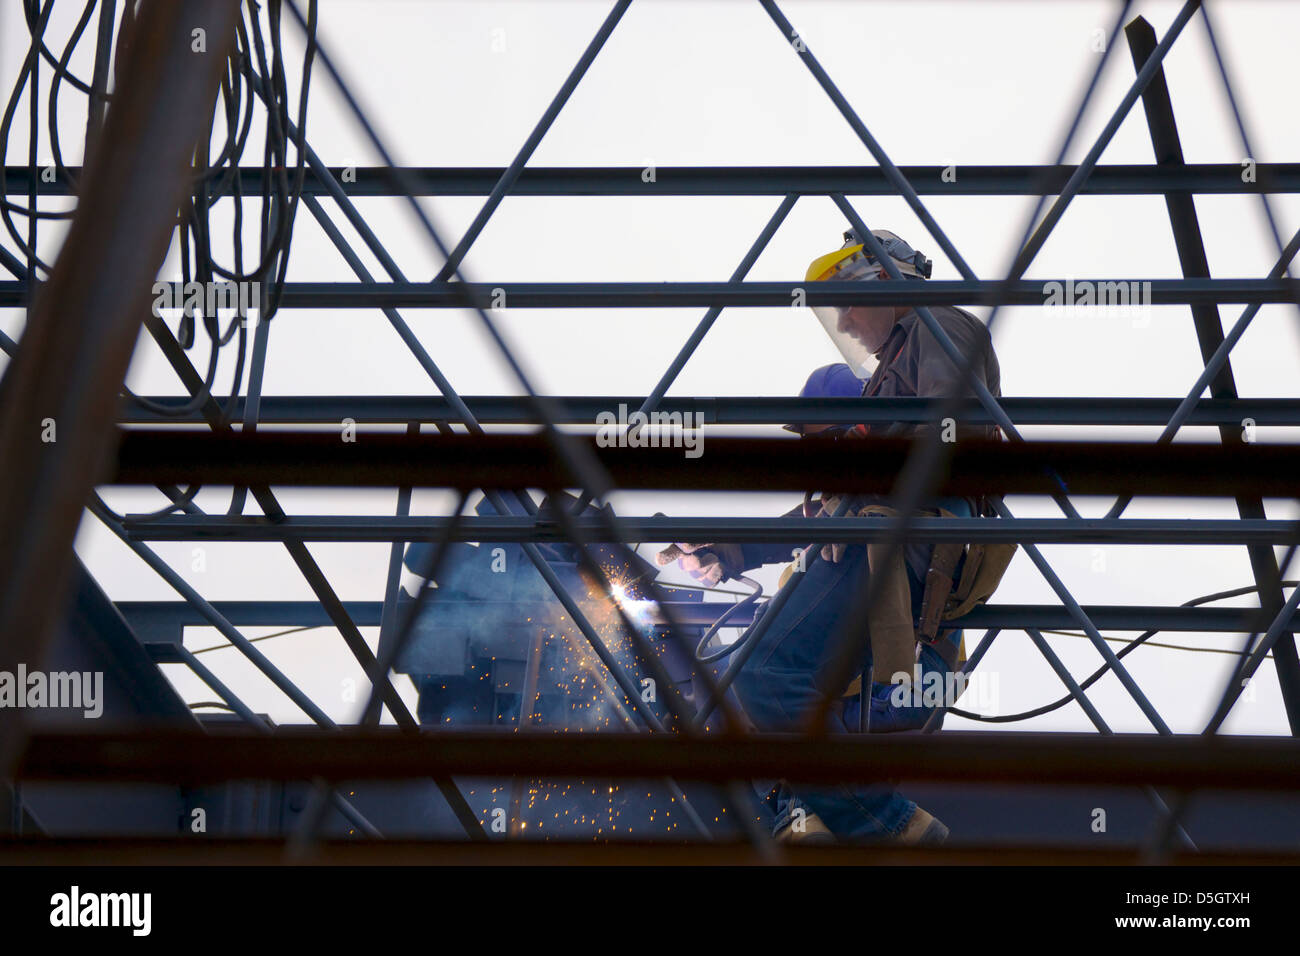 Ironworkers welding the steel framework of a building Stock Photo